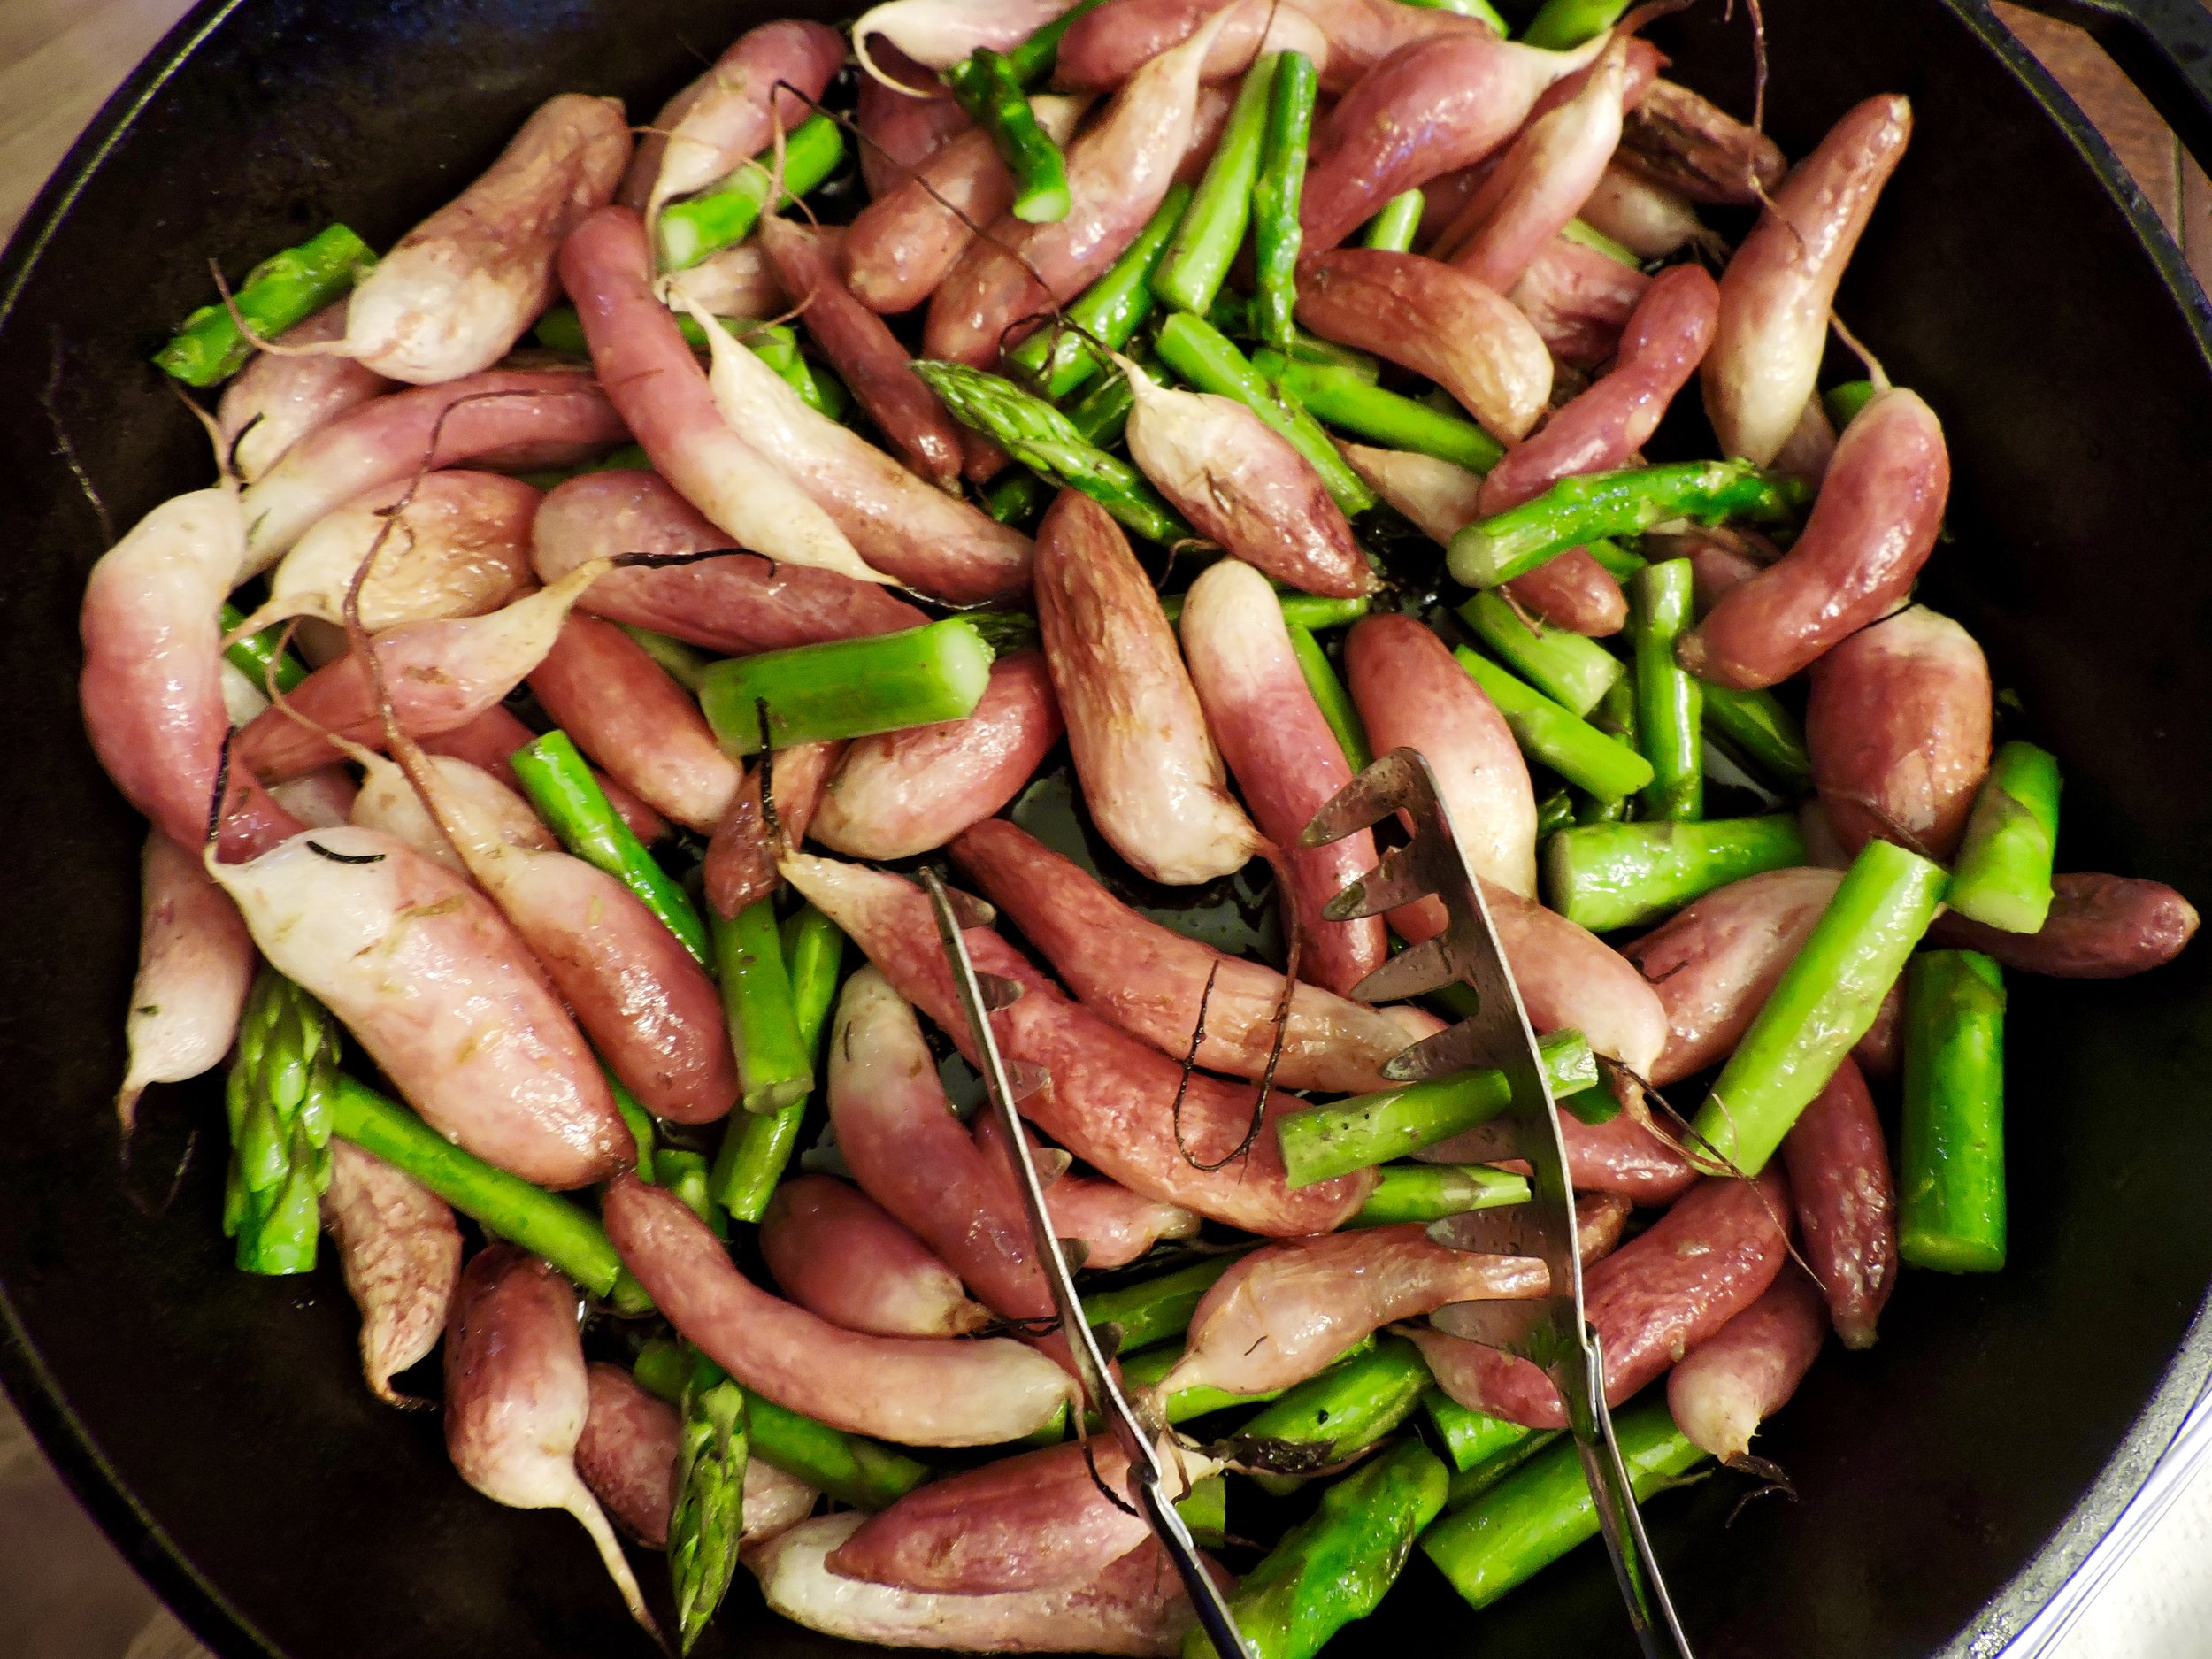 Roasted radishes & asparagus, tossed with some honey citrus vinaigrette (recipe below).